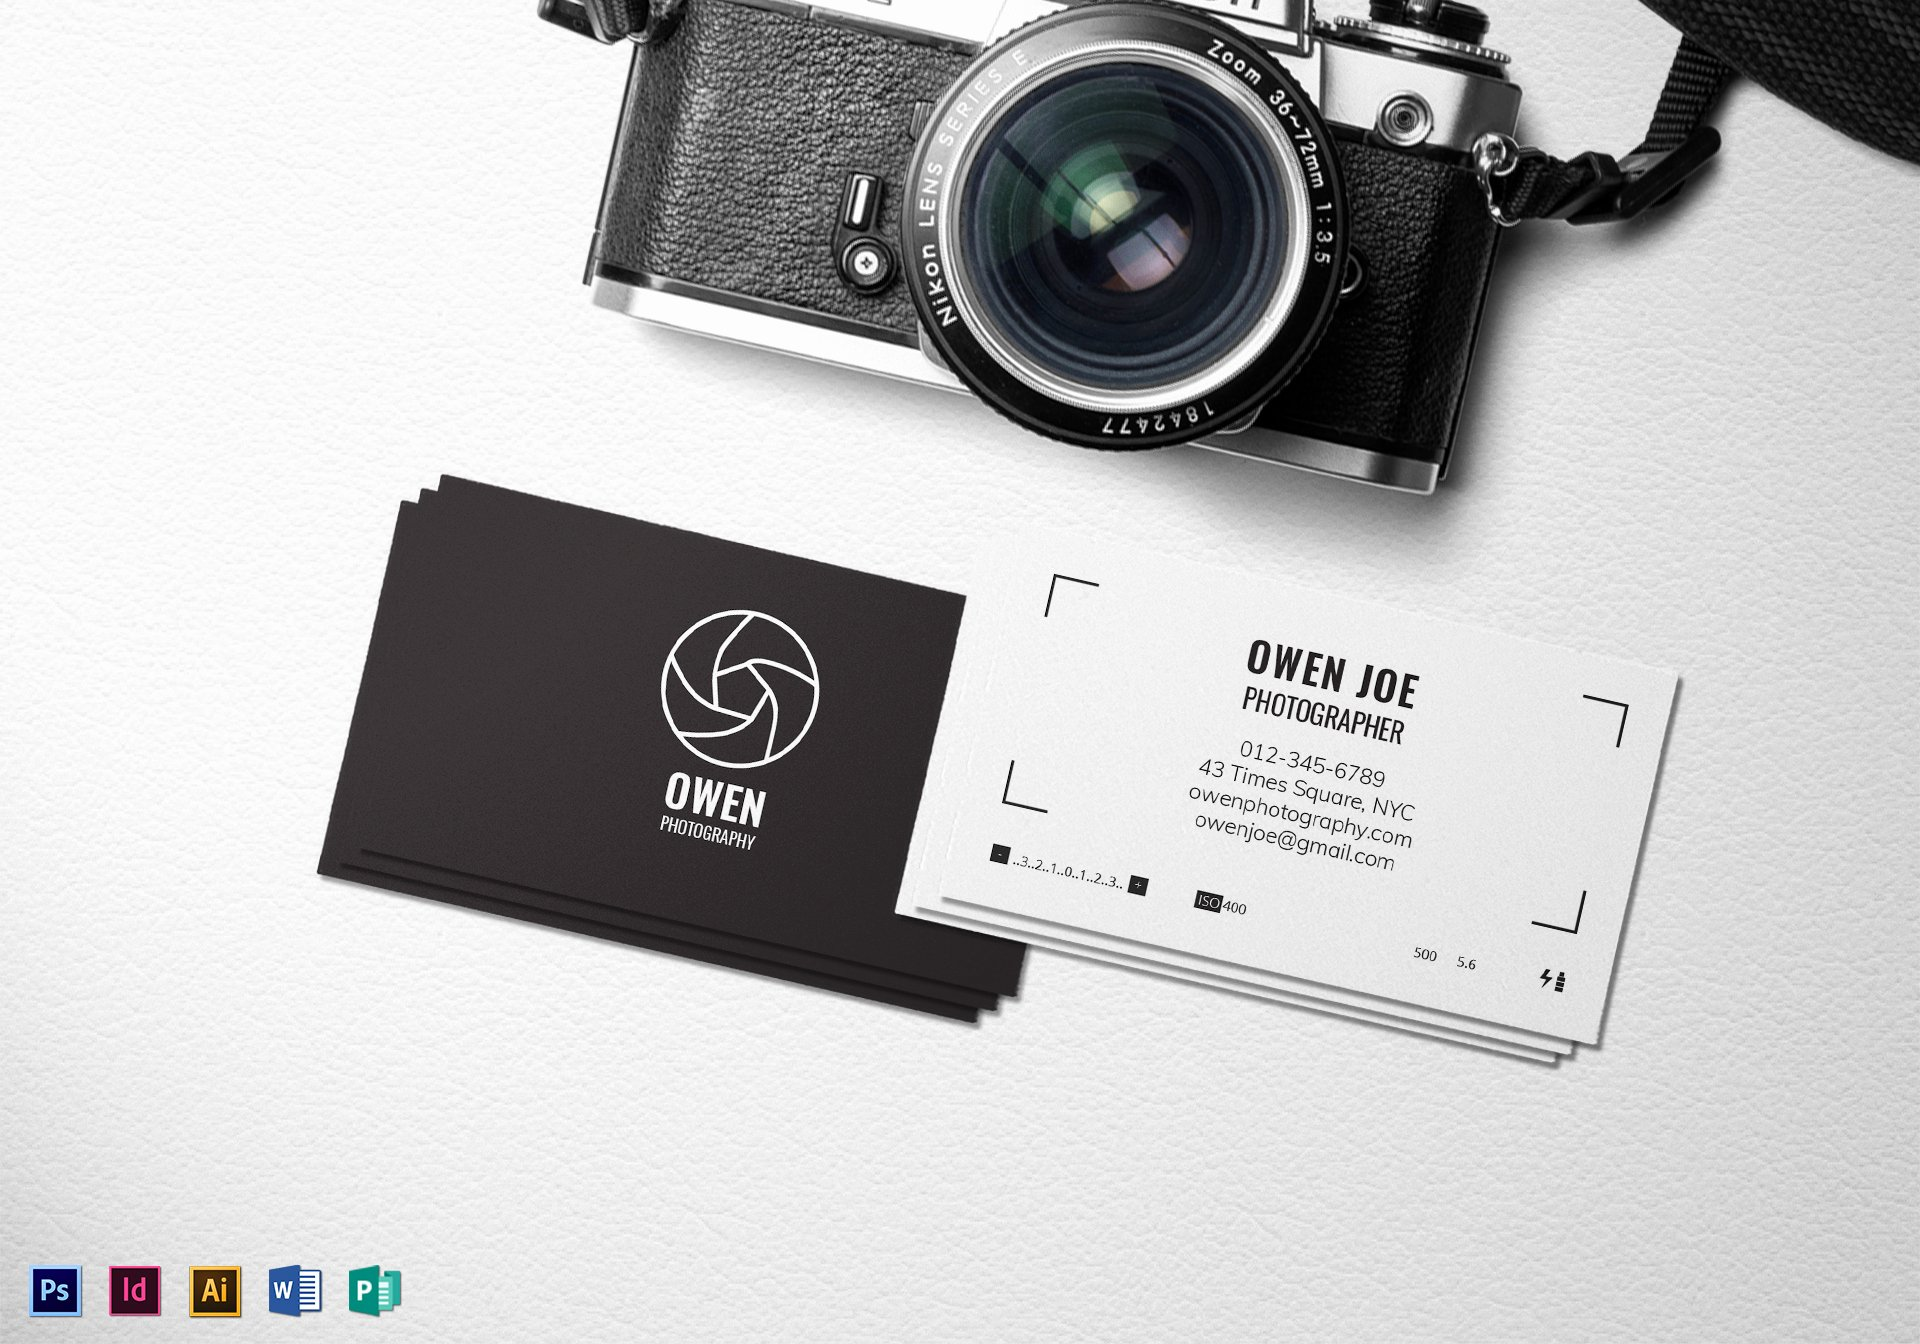 Professional Photography Business Cards Fresh Grapher Lens Business Card Template In Psd Word Publisher Illustrator Indesign